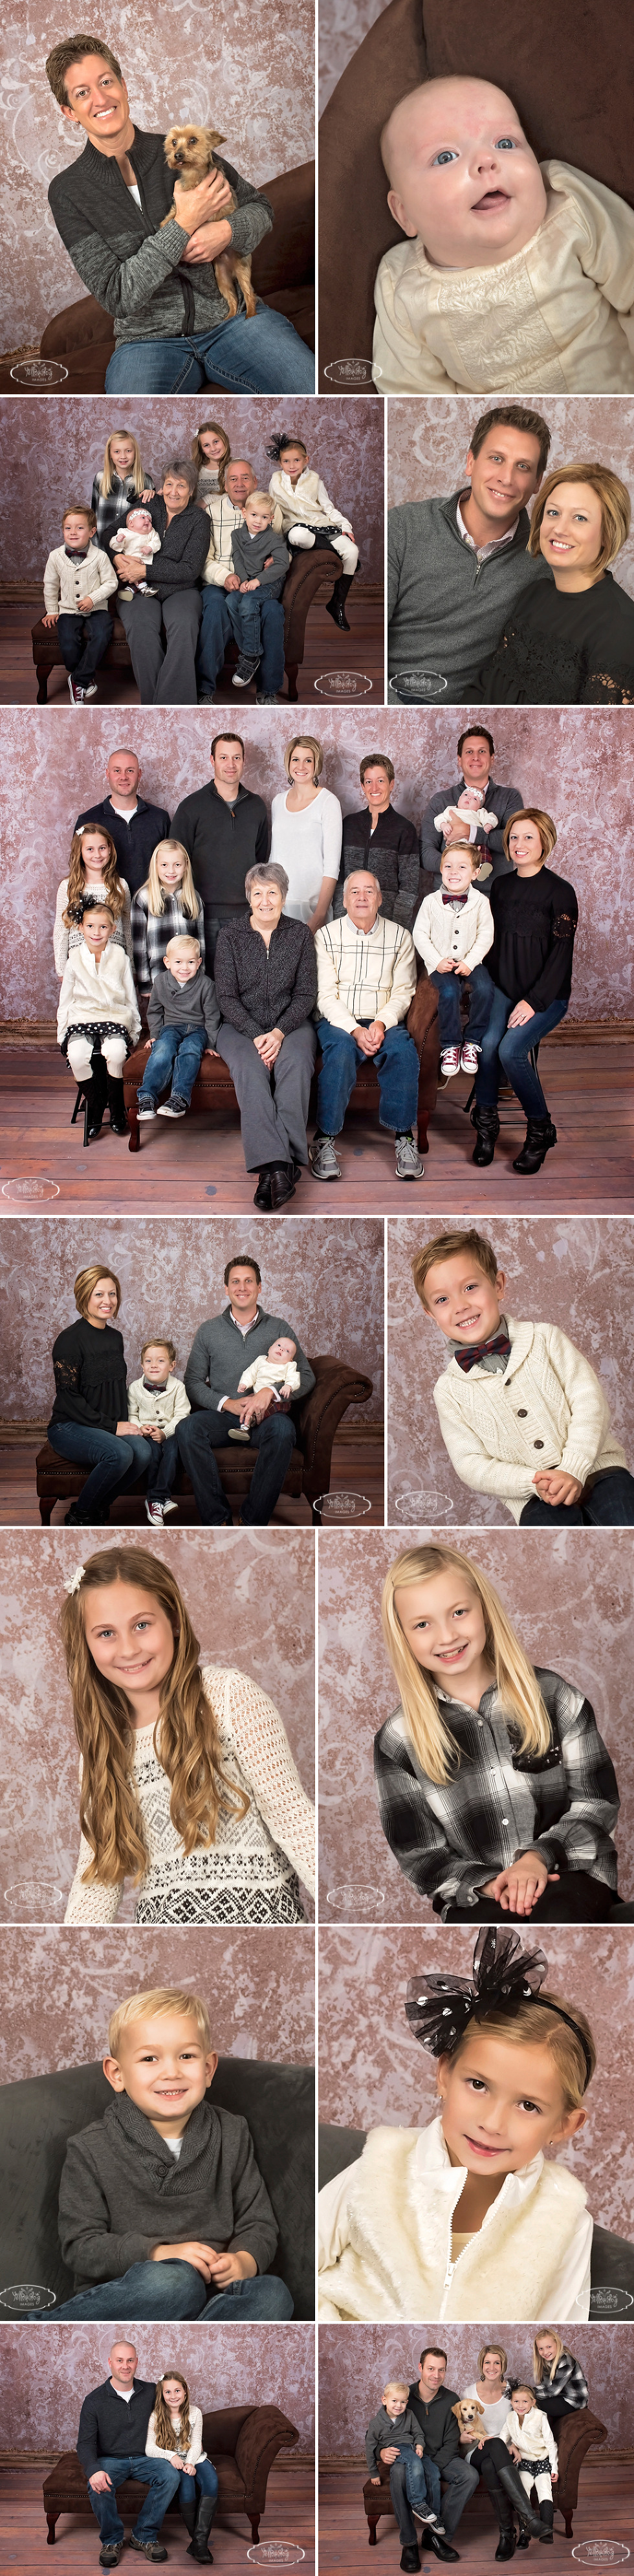 Brownstown Family Phtography_Zabel Family